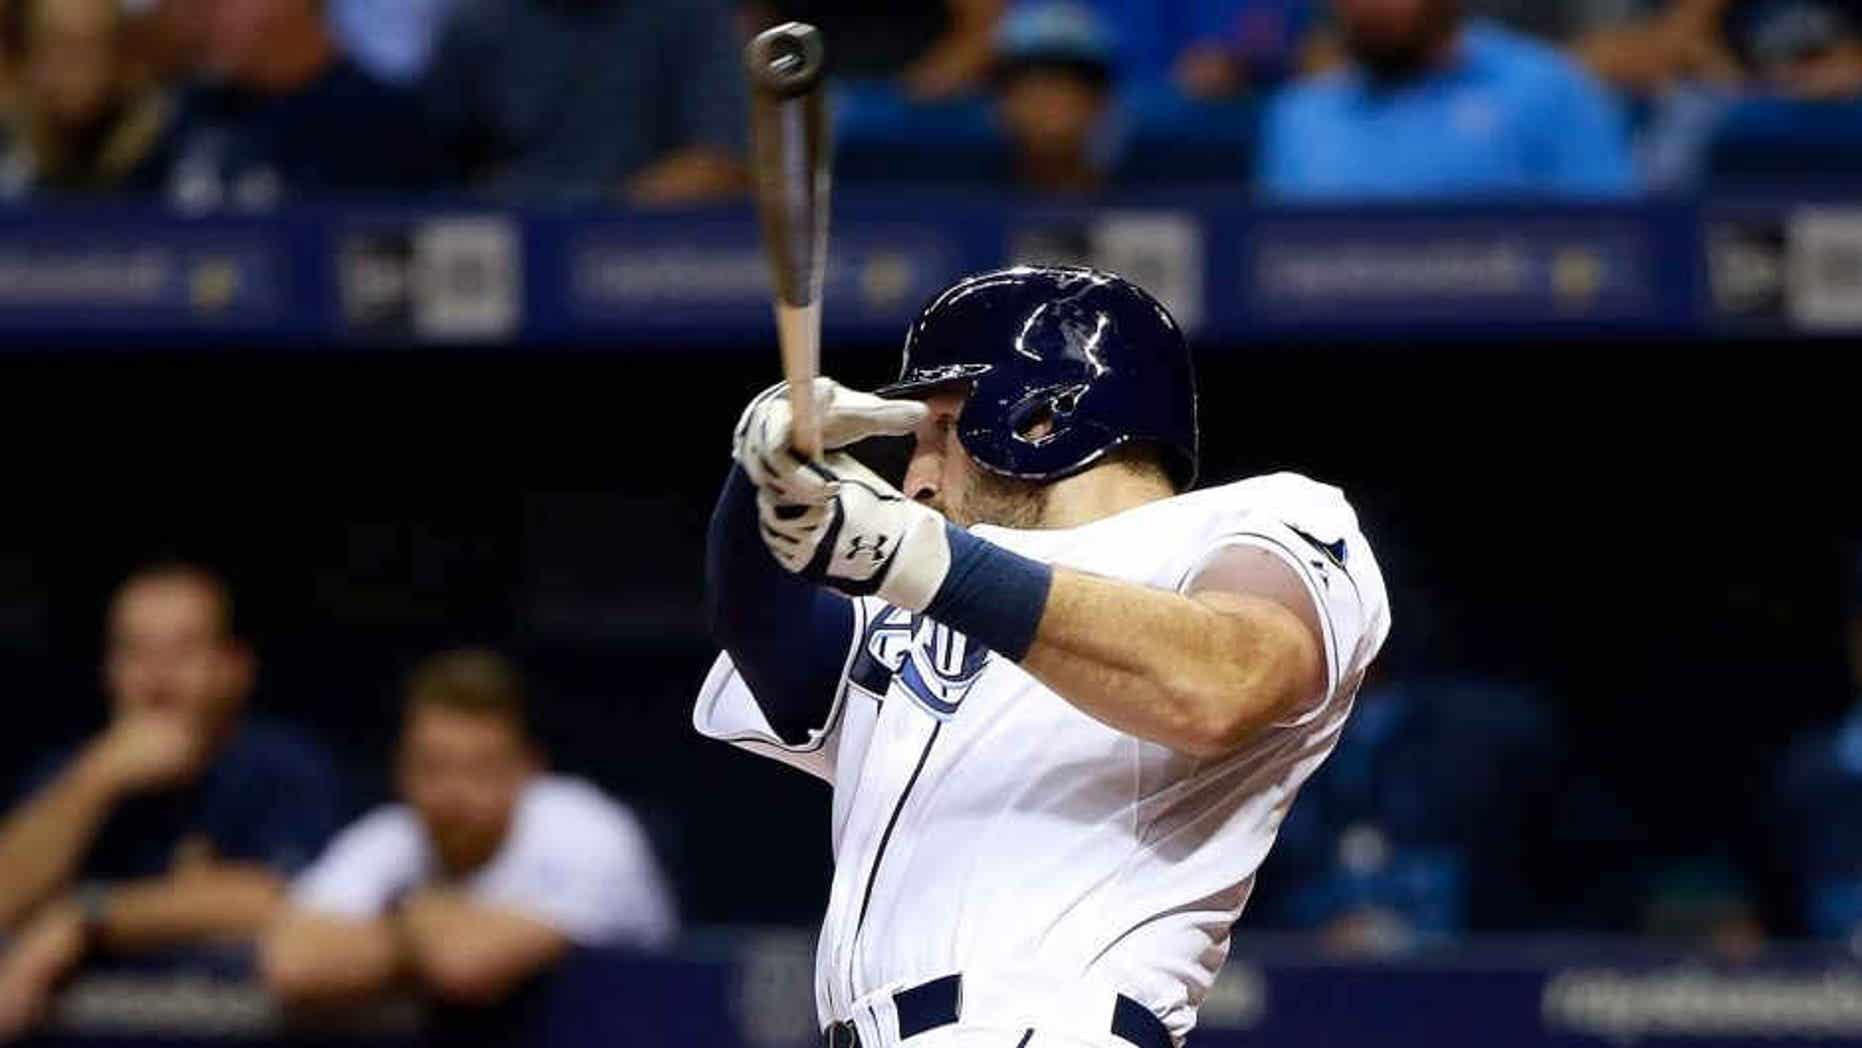 Jul 28, 2015; St. Petersburg, FL, USA; Tampa Bay Rays catcher Curt Casali (19) hits a two-run home run during the fourth inning against the Detroit Tigers at Tropicana Field. Mandatory Credit: Kim Klement-USA TODAY Sports